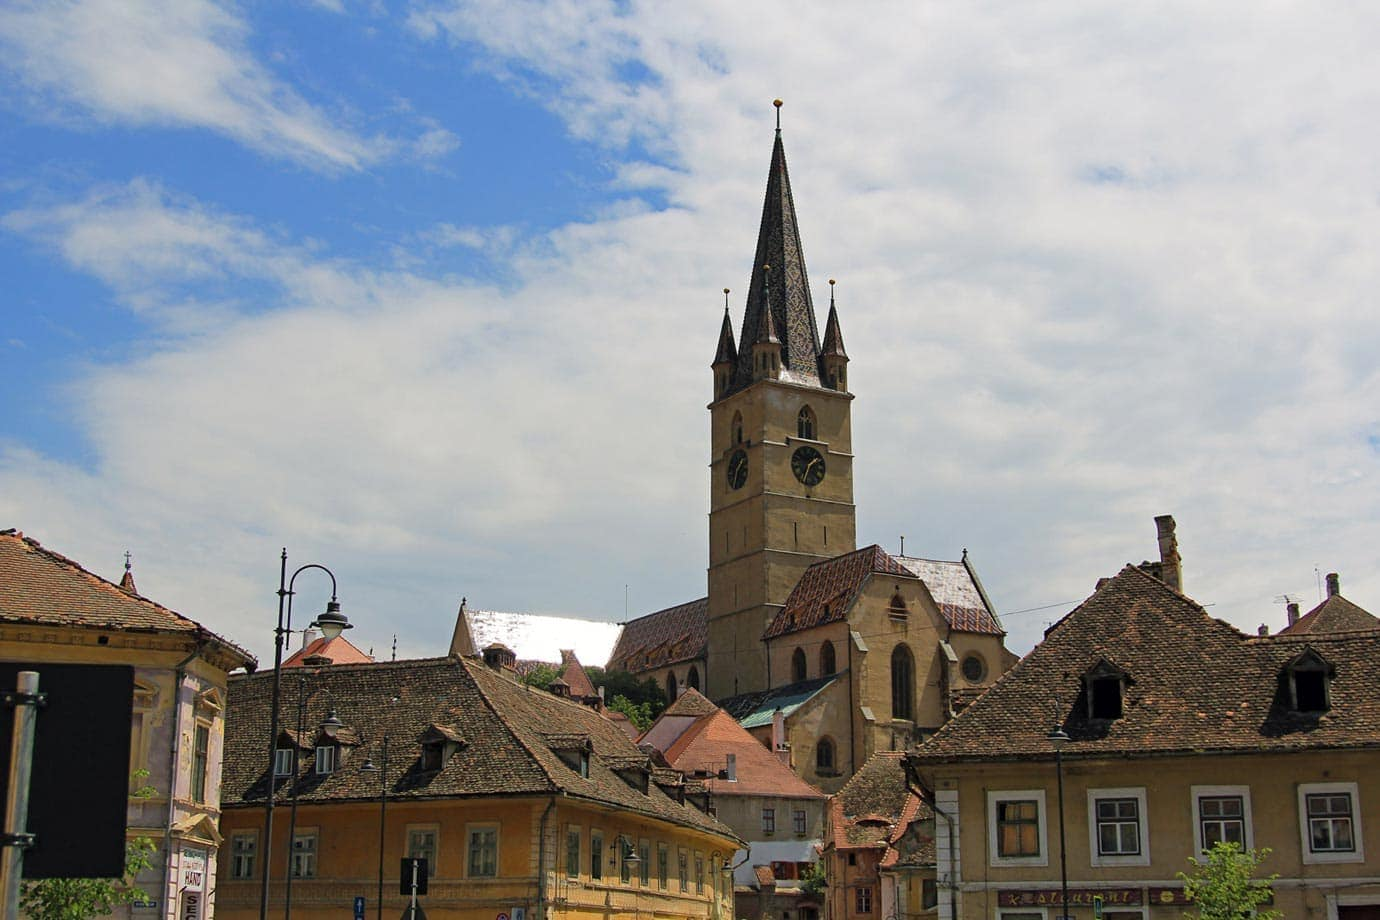 Sightseeing in Sibiu, Romania